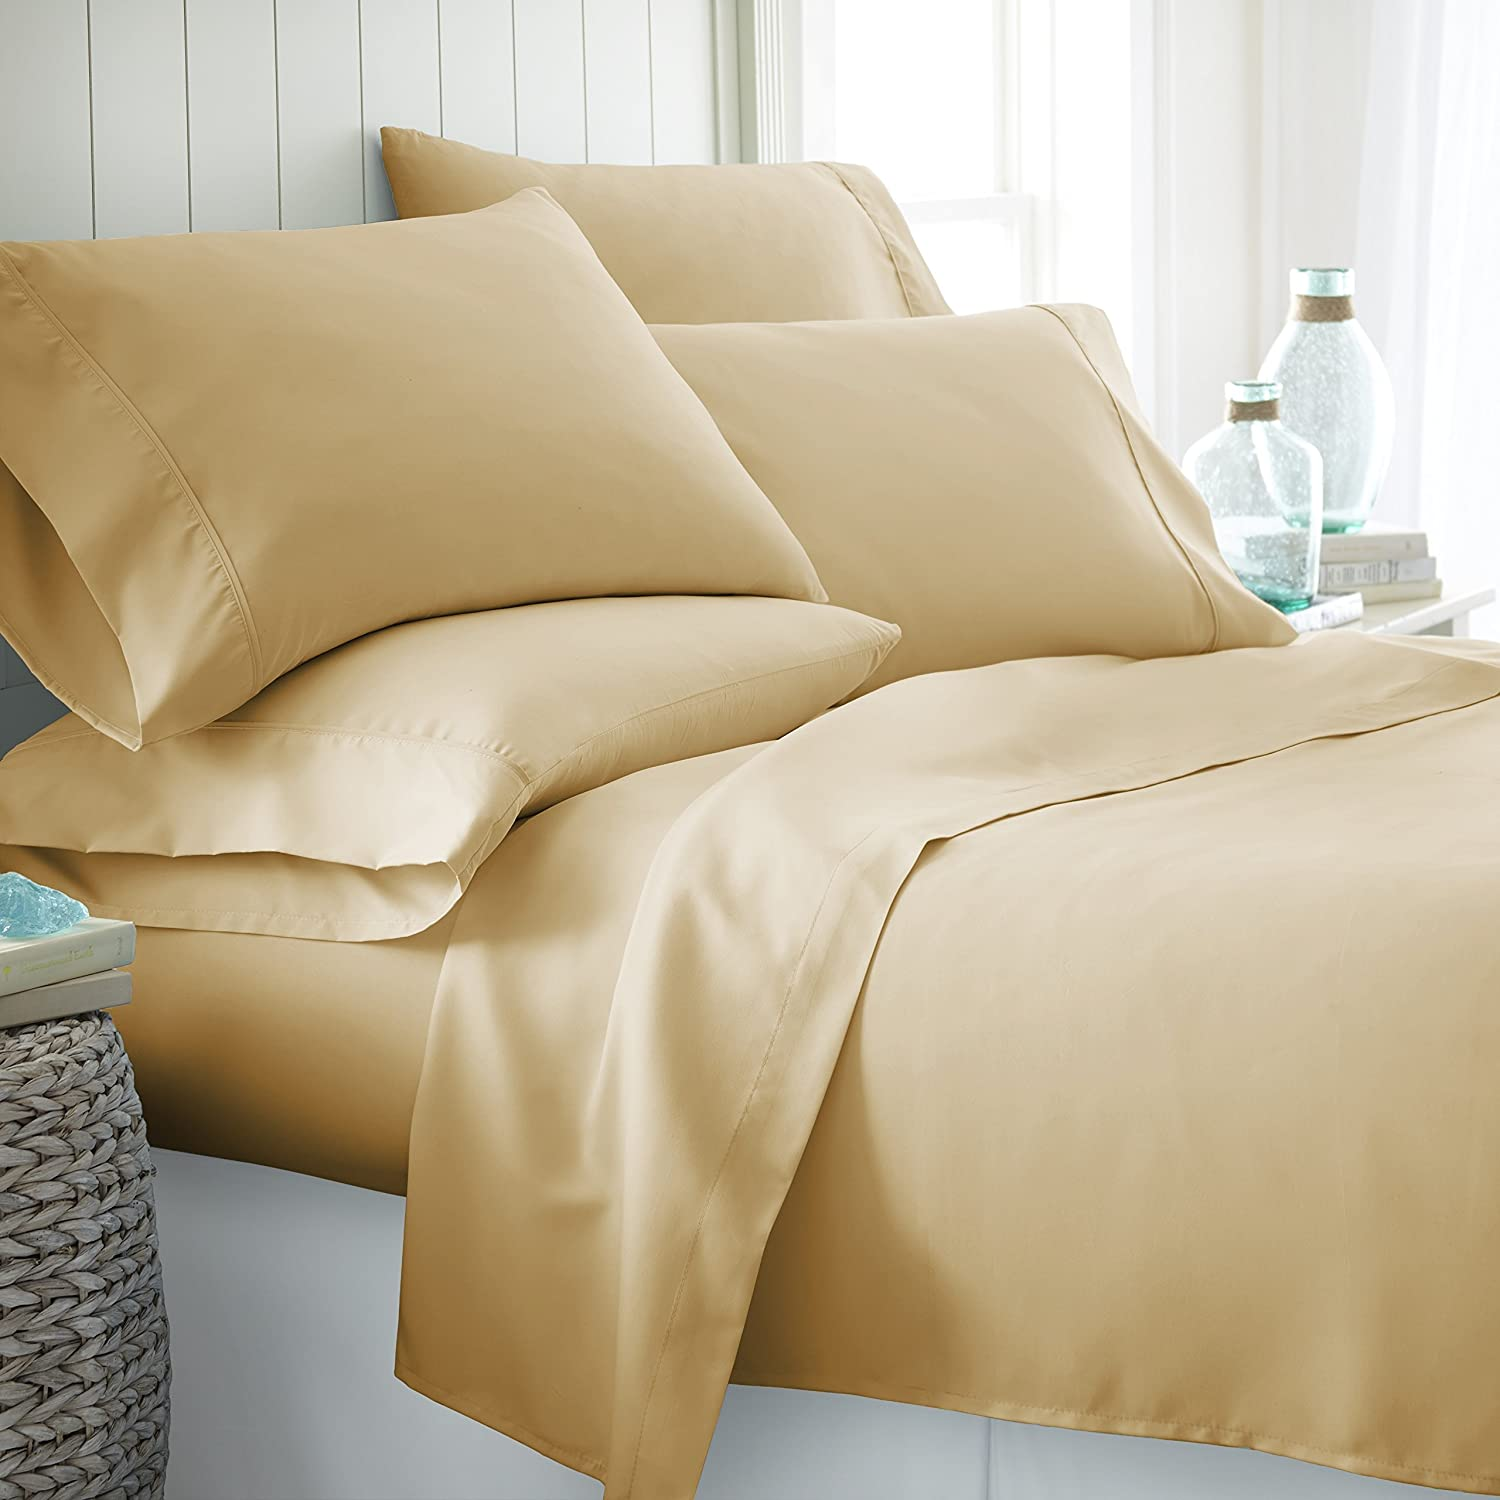 Hypoallergenic Sheet and Pillowcase Set (Full, Camel